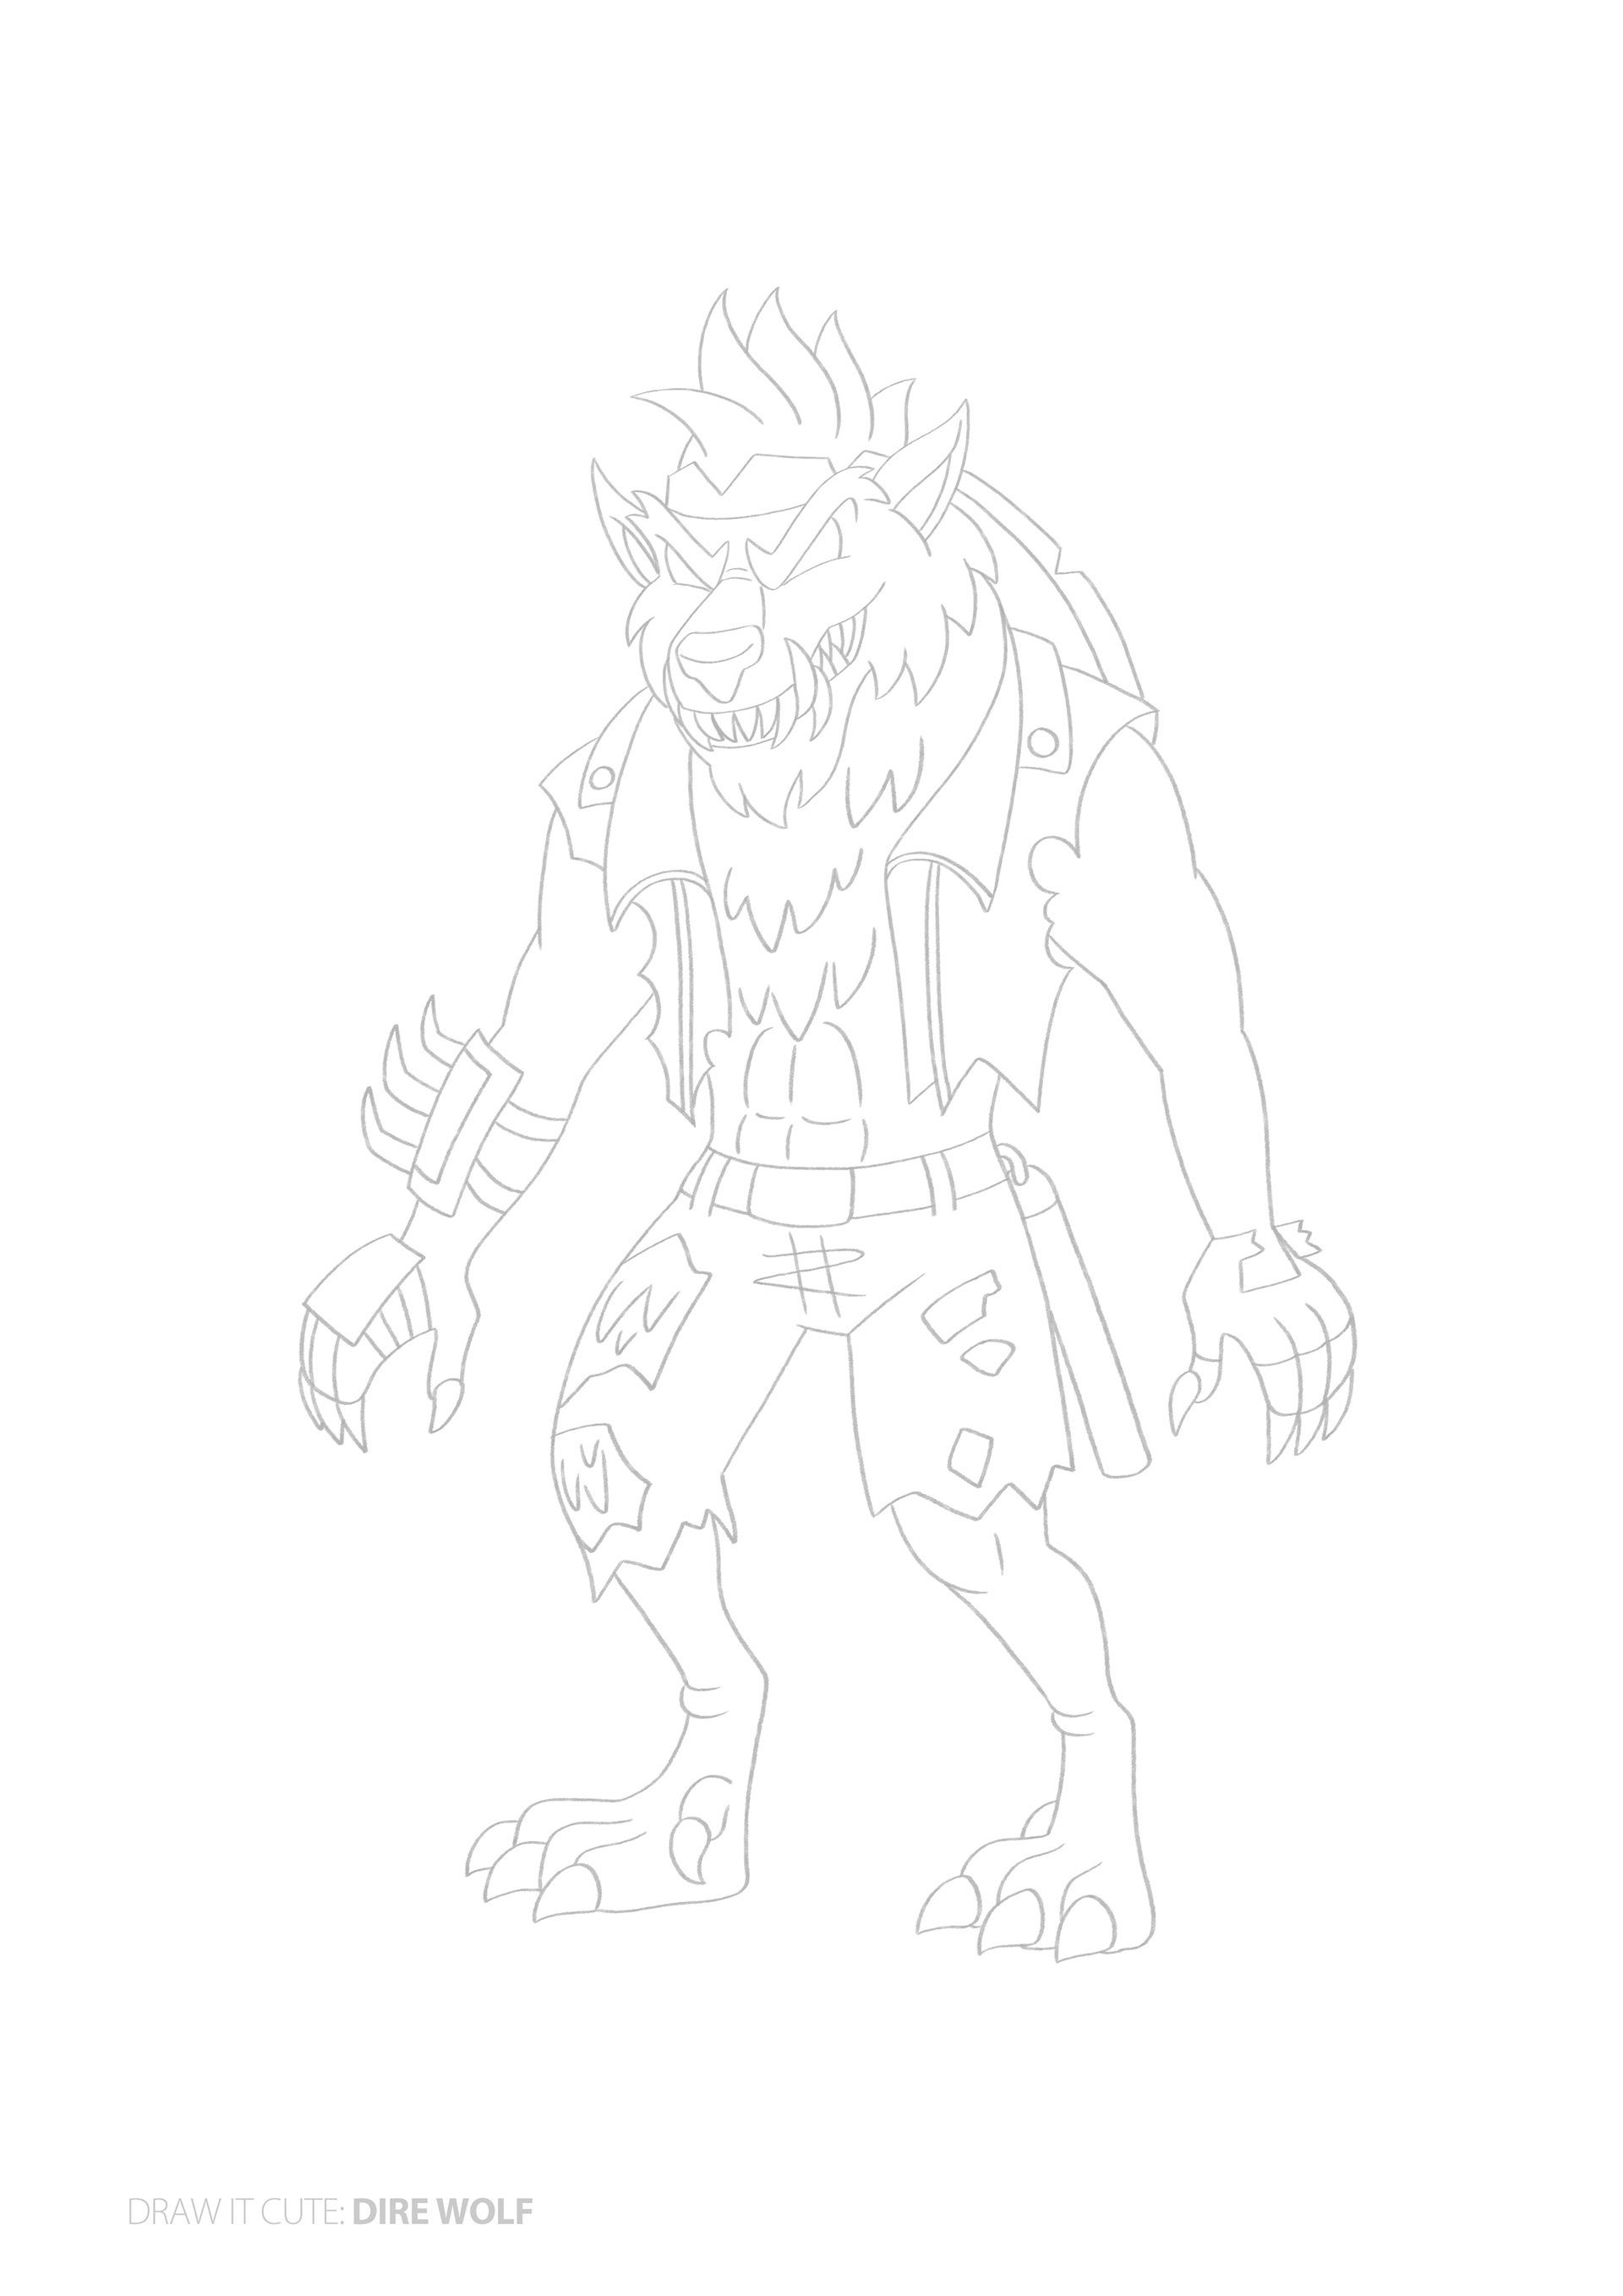 How To Draw Dire Wolf Easy Fortnite Character Skin On